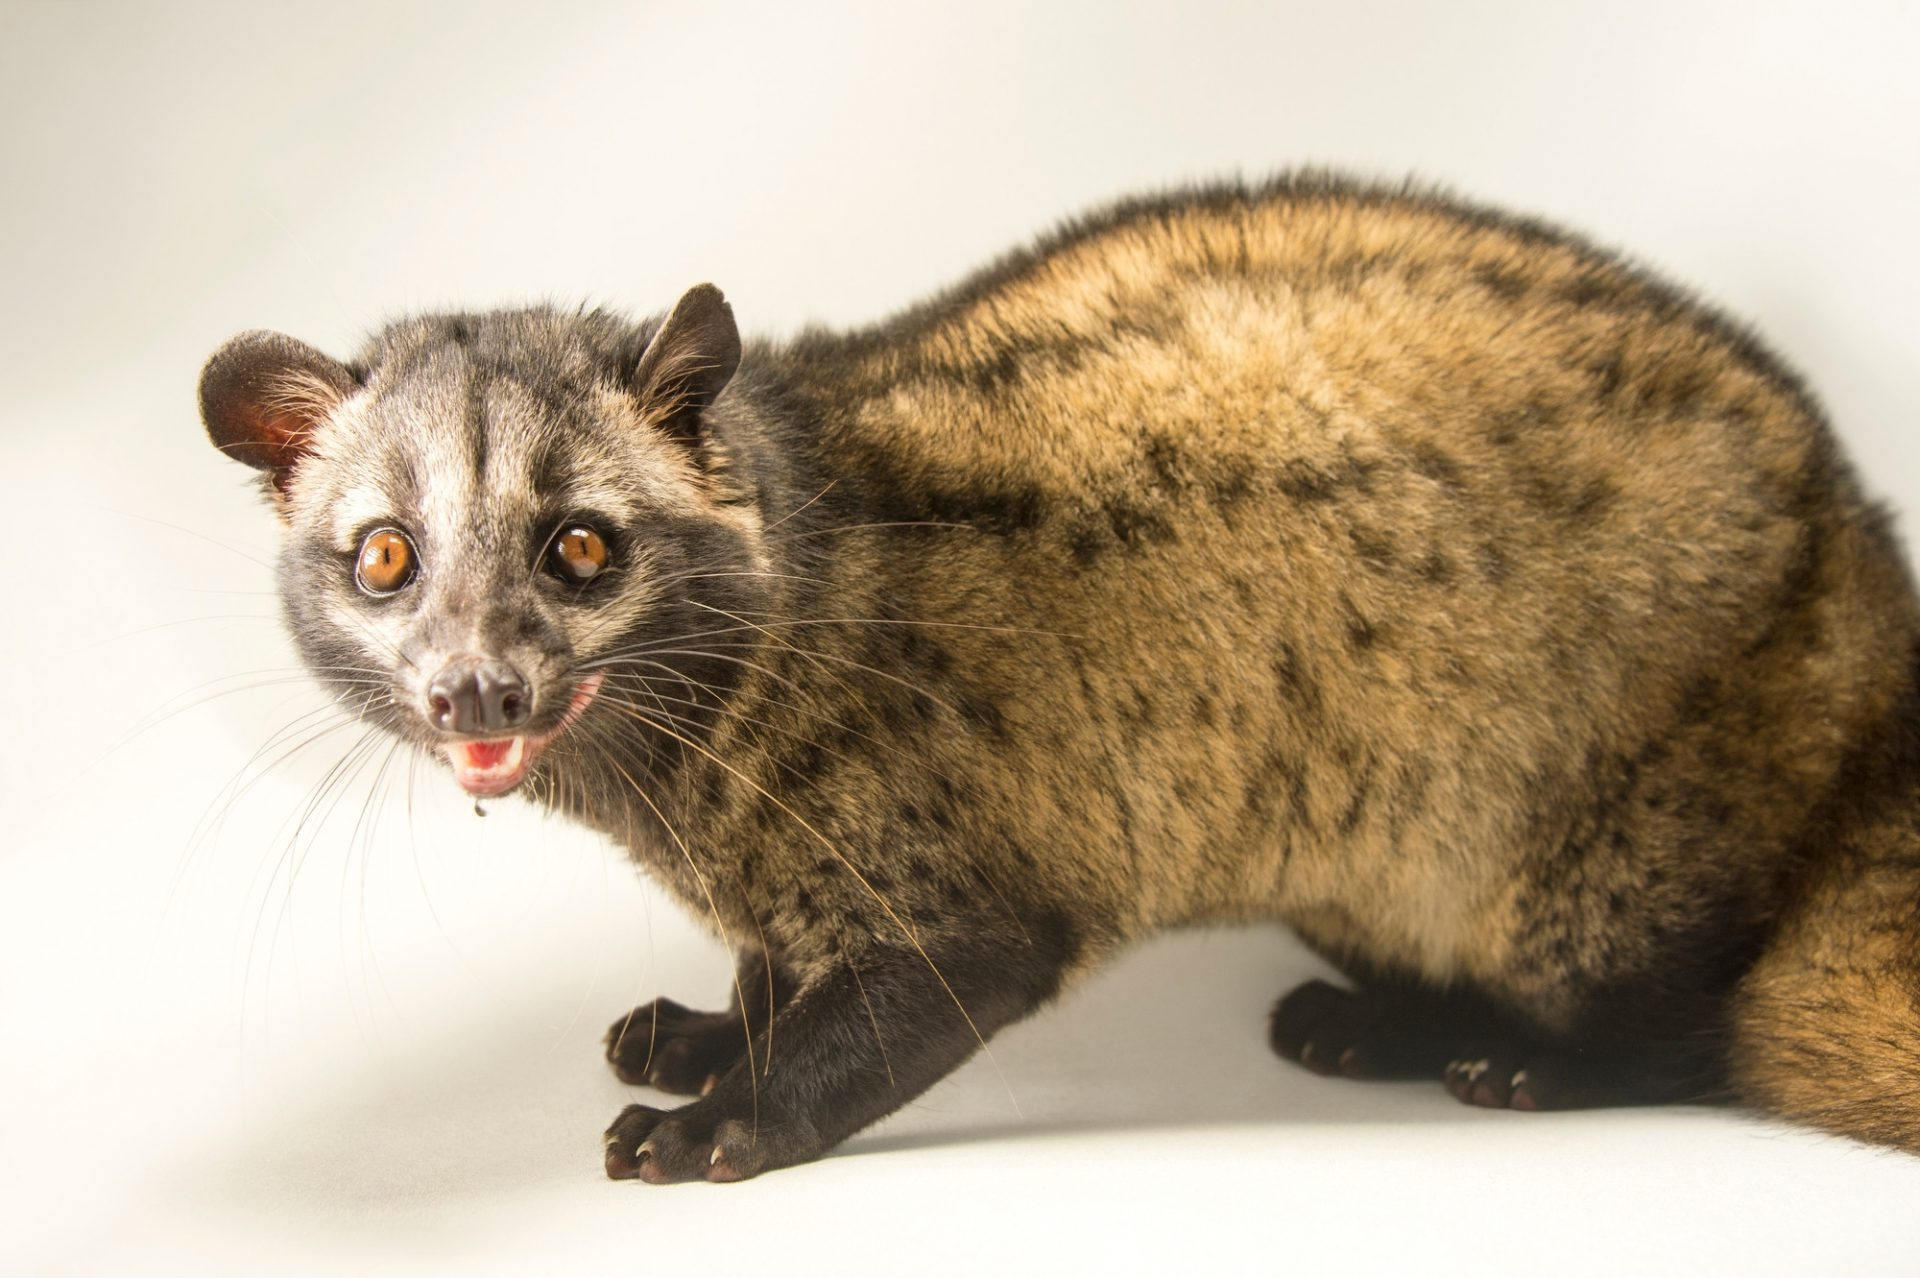 Photo: Common palm civet (Paradoxurus hermaphroditus) at the Assam State Zoo in Guwahati, Assam, India.